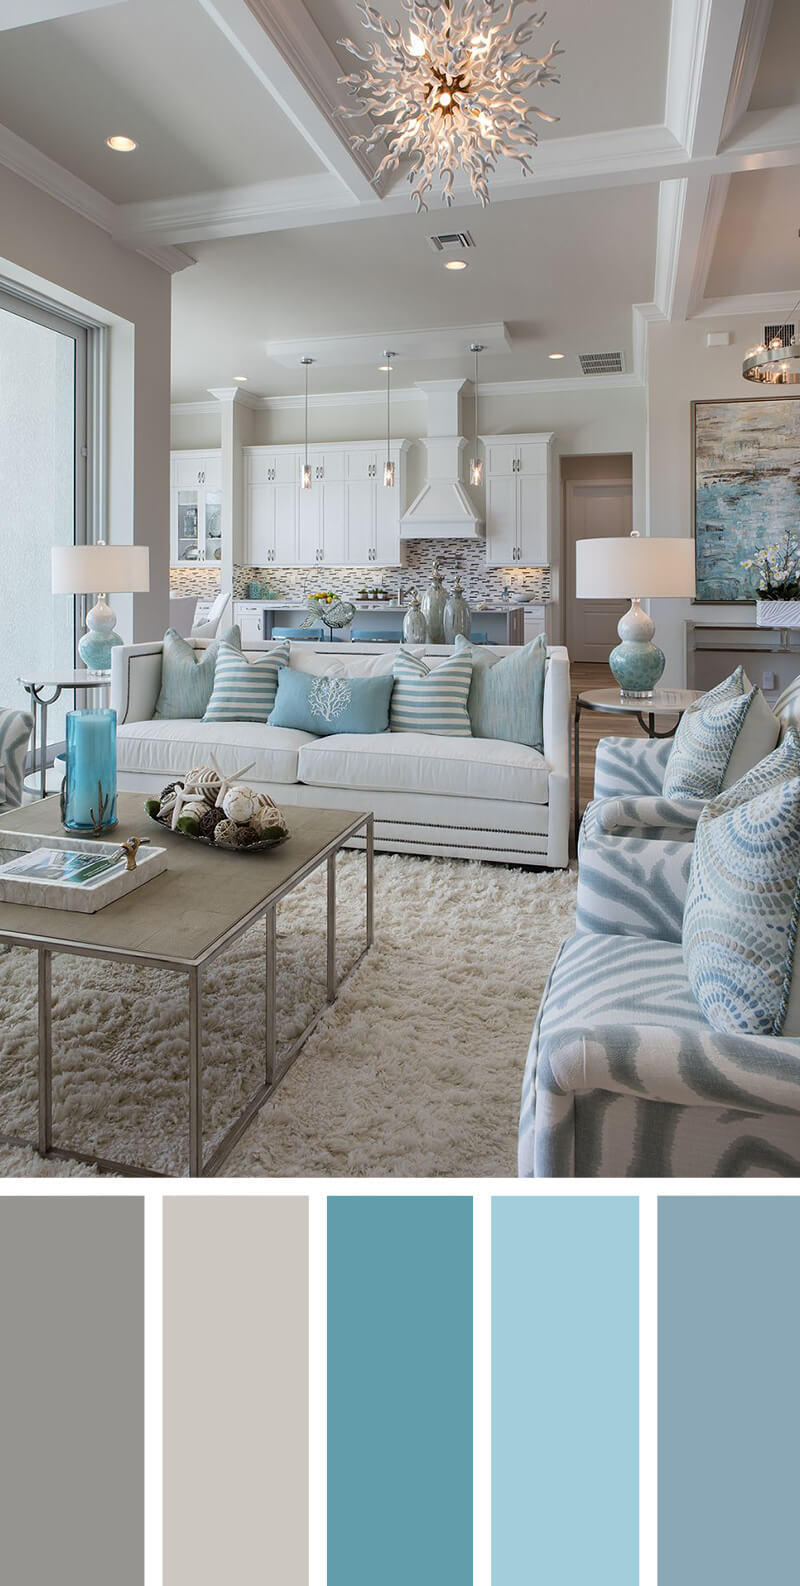 2. A Calming Sea of Blues & 7 Best Living Room Color Scheme Ideas and Designs for 2018